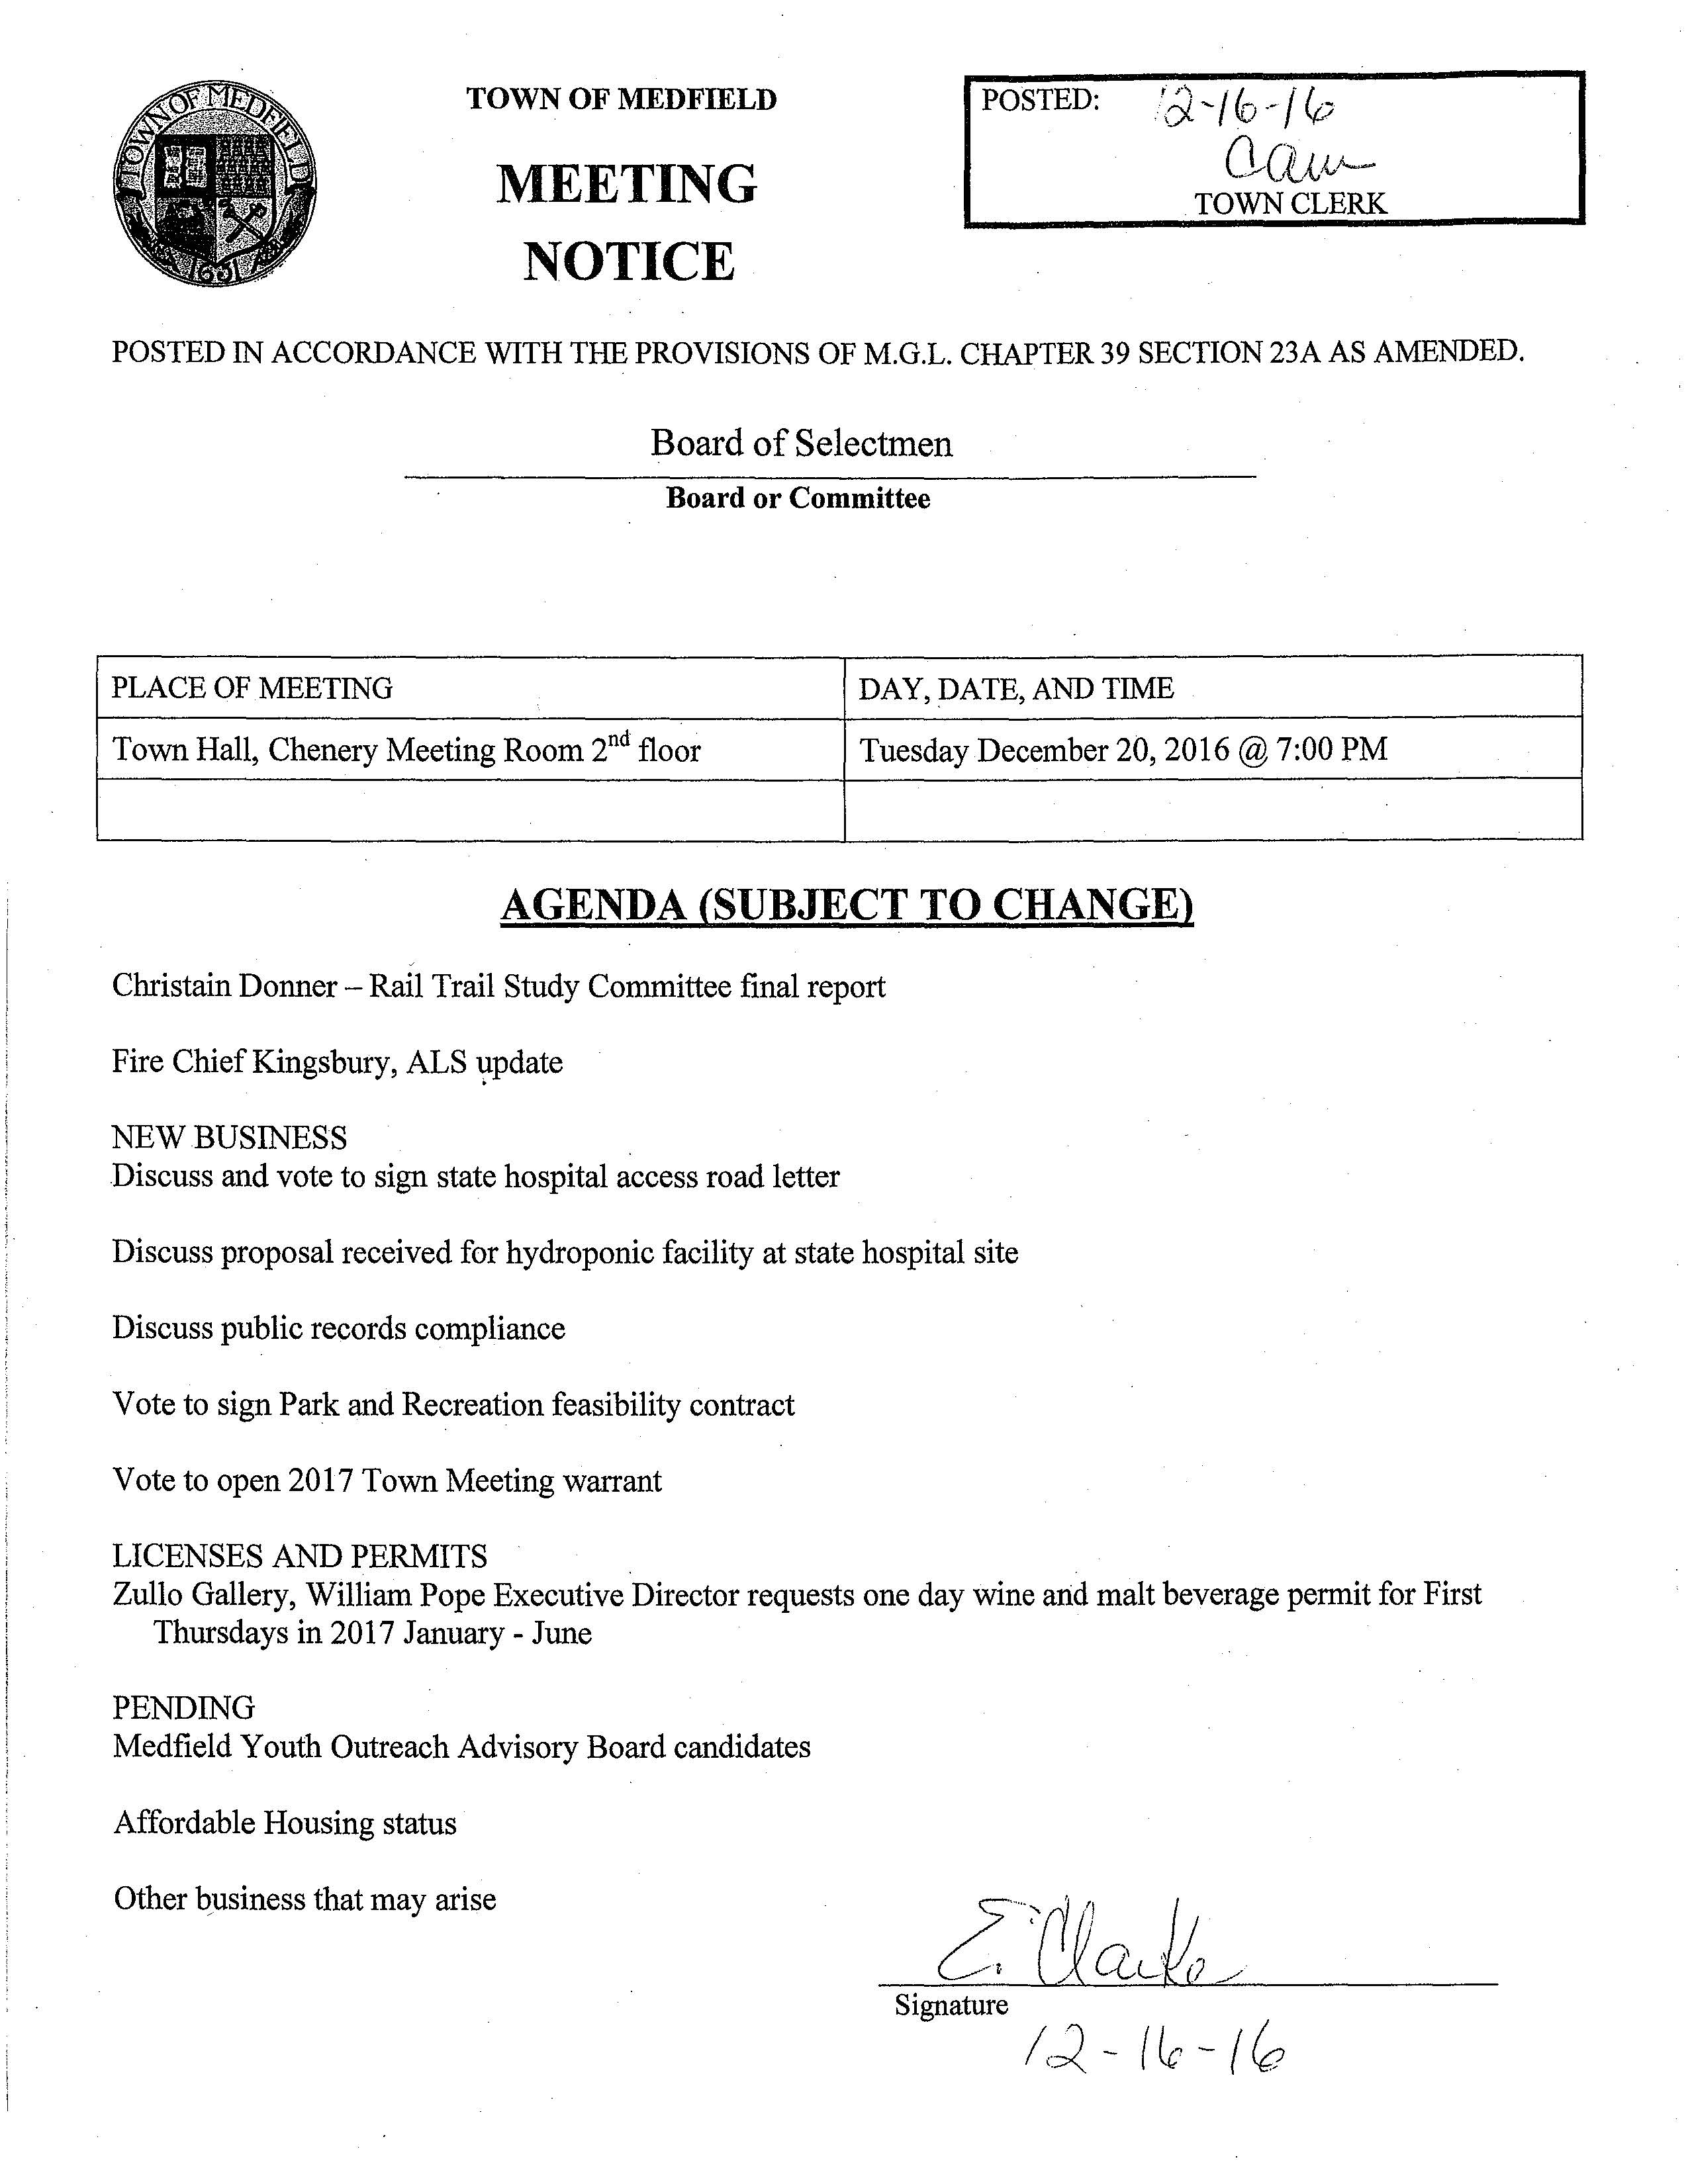 TOWN OF MEDFIELD MEETING NOTICE POSTED: 'd.-/fo--/0 0/Q,